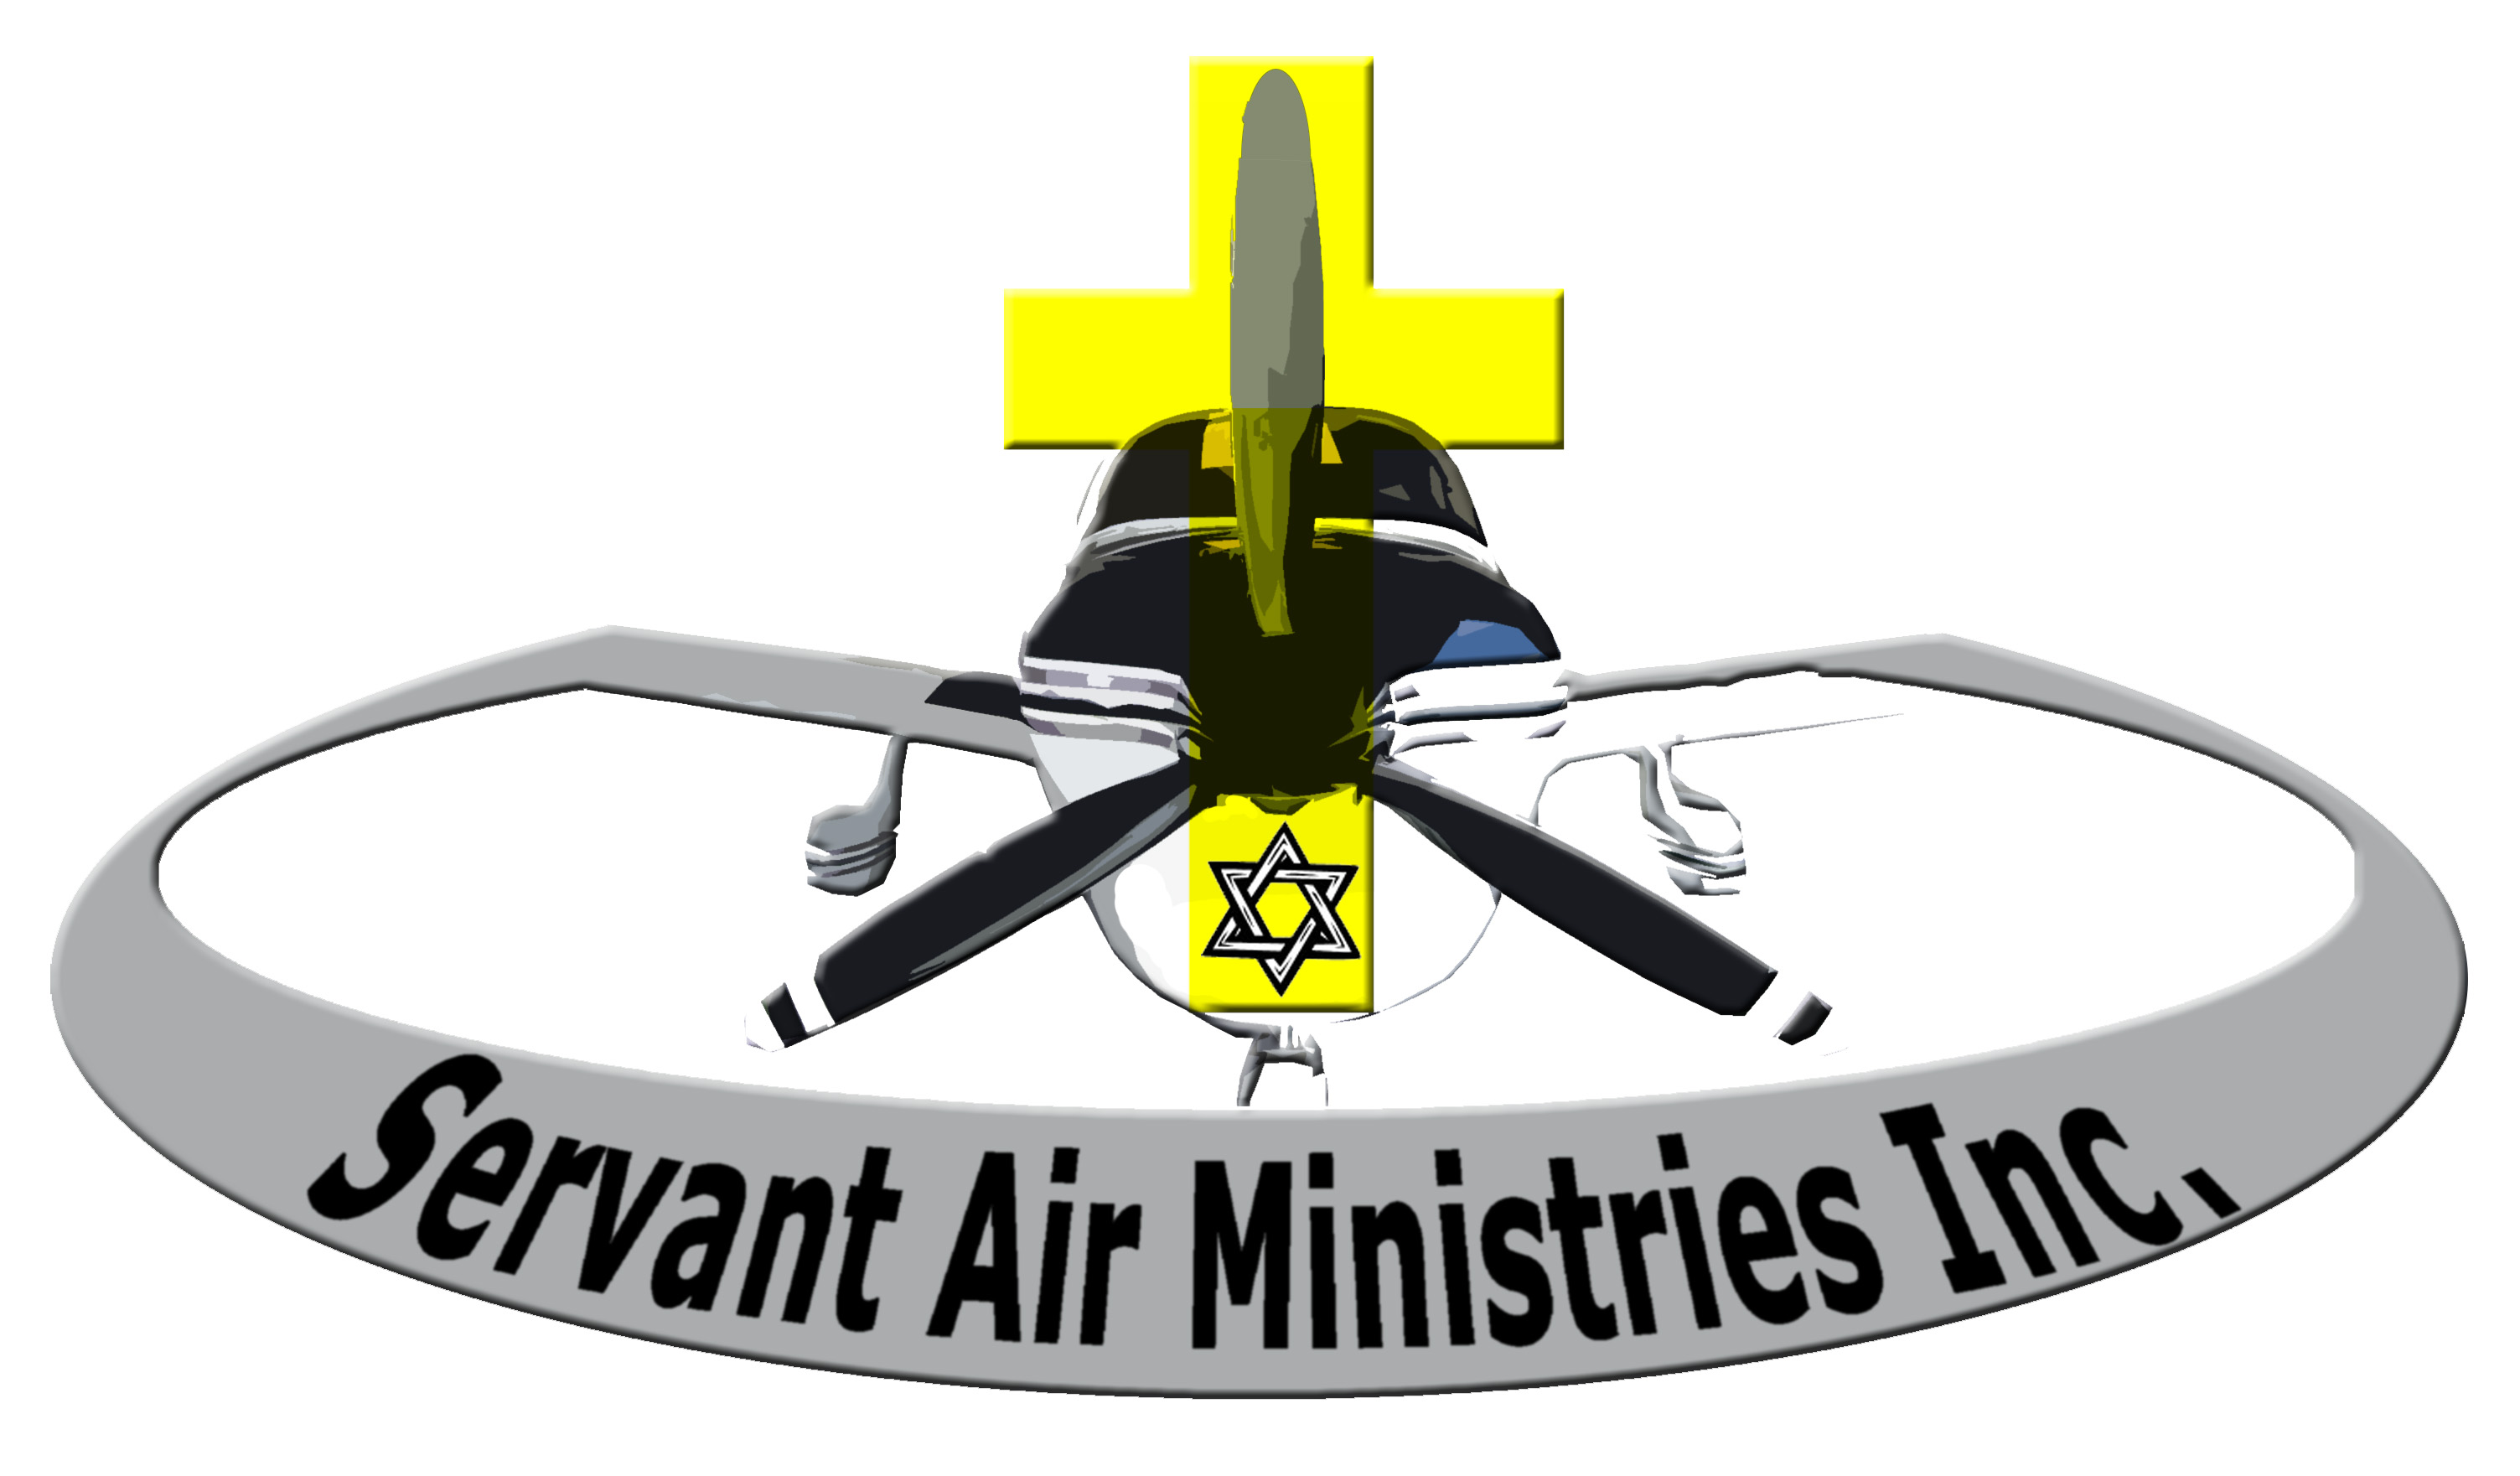 Servant Air Ministries Inc.